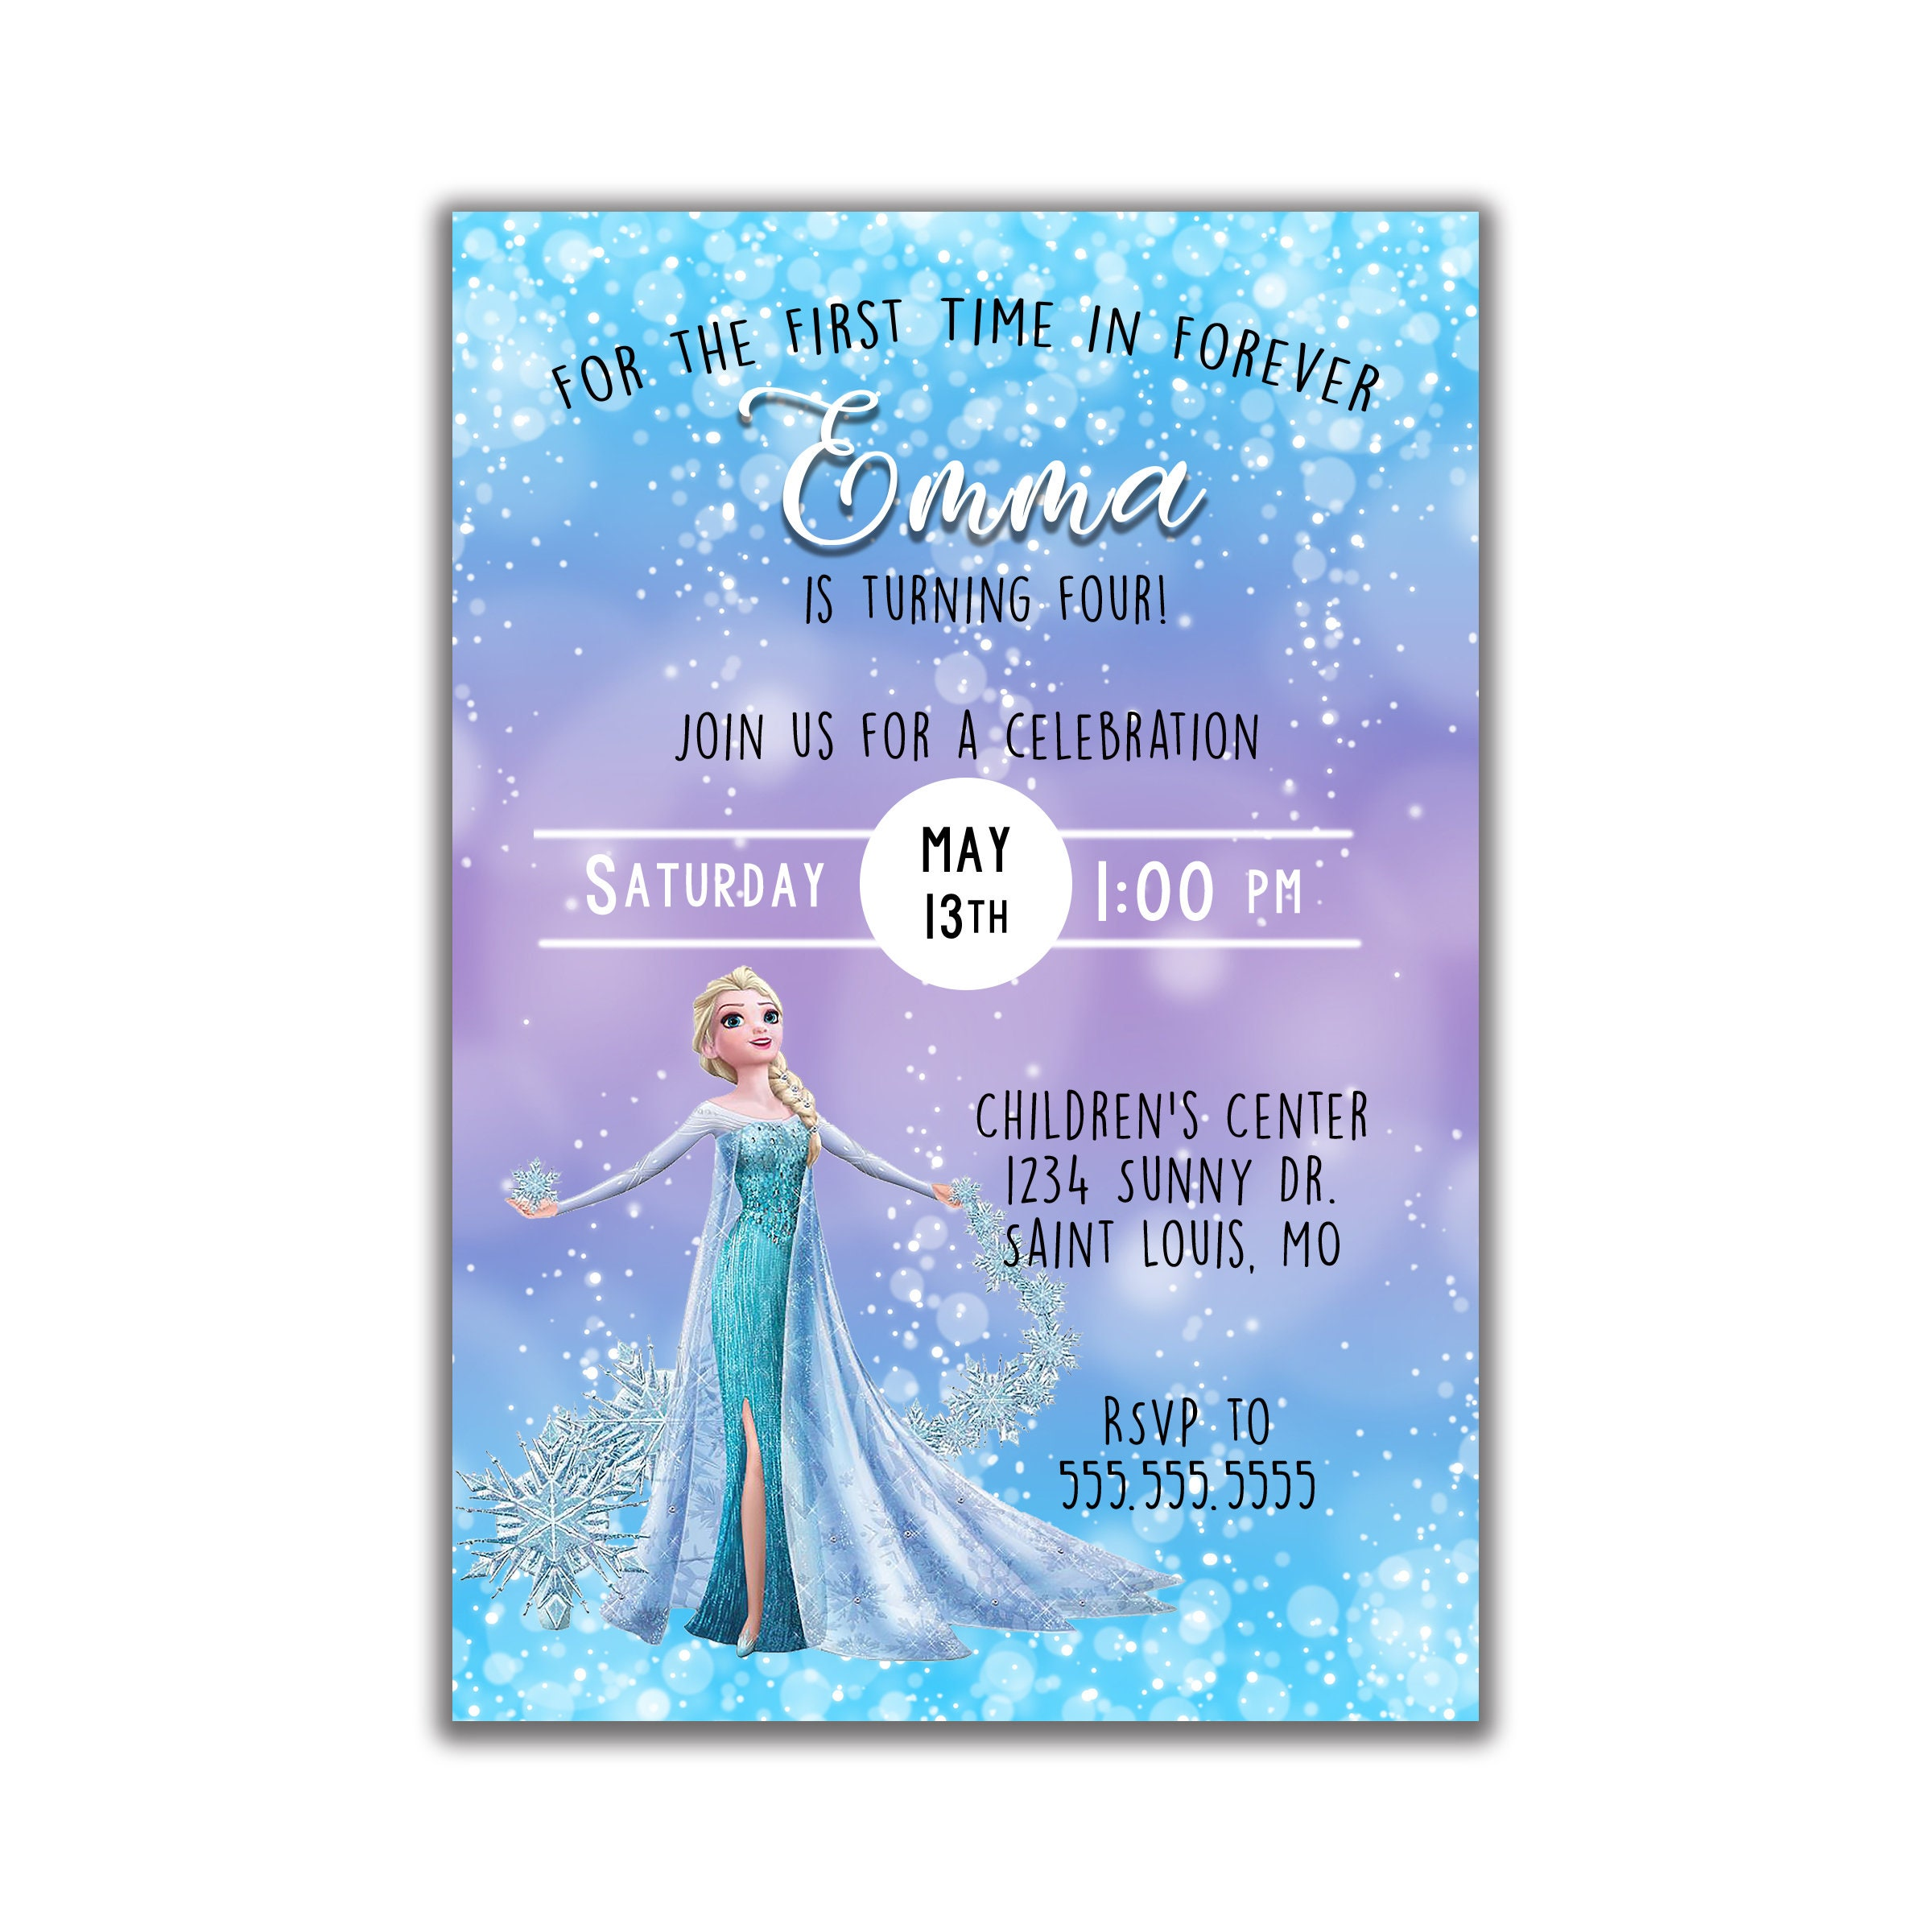 encludes envelopes 25 Frozen Birthday Party Invitations Personalized